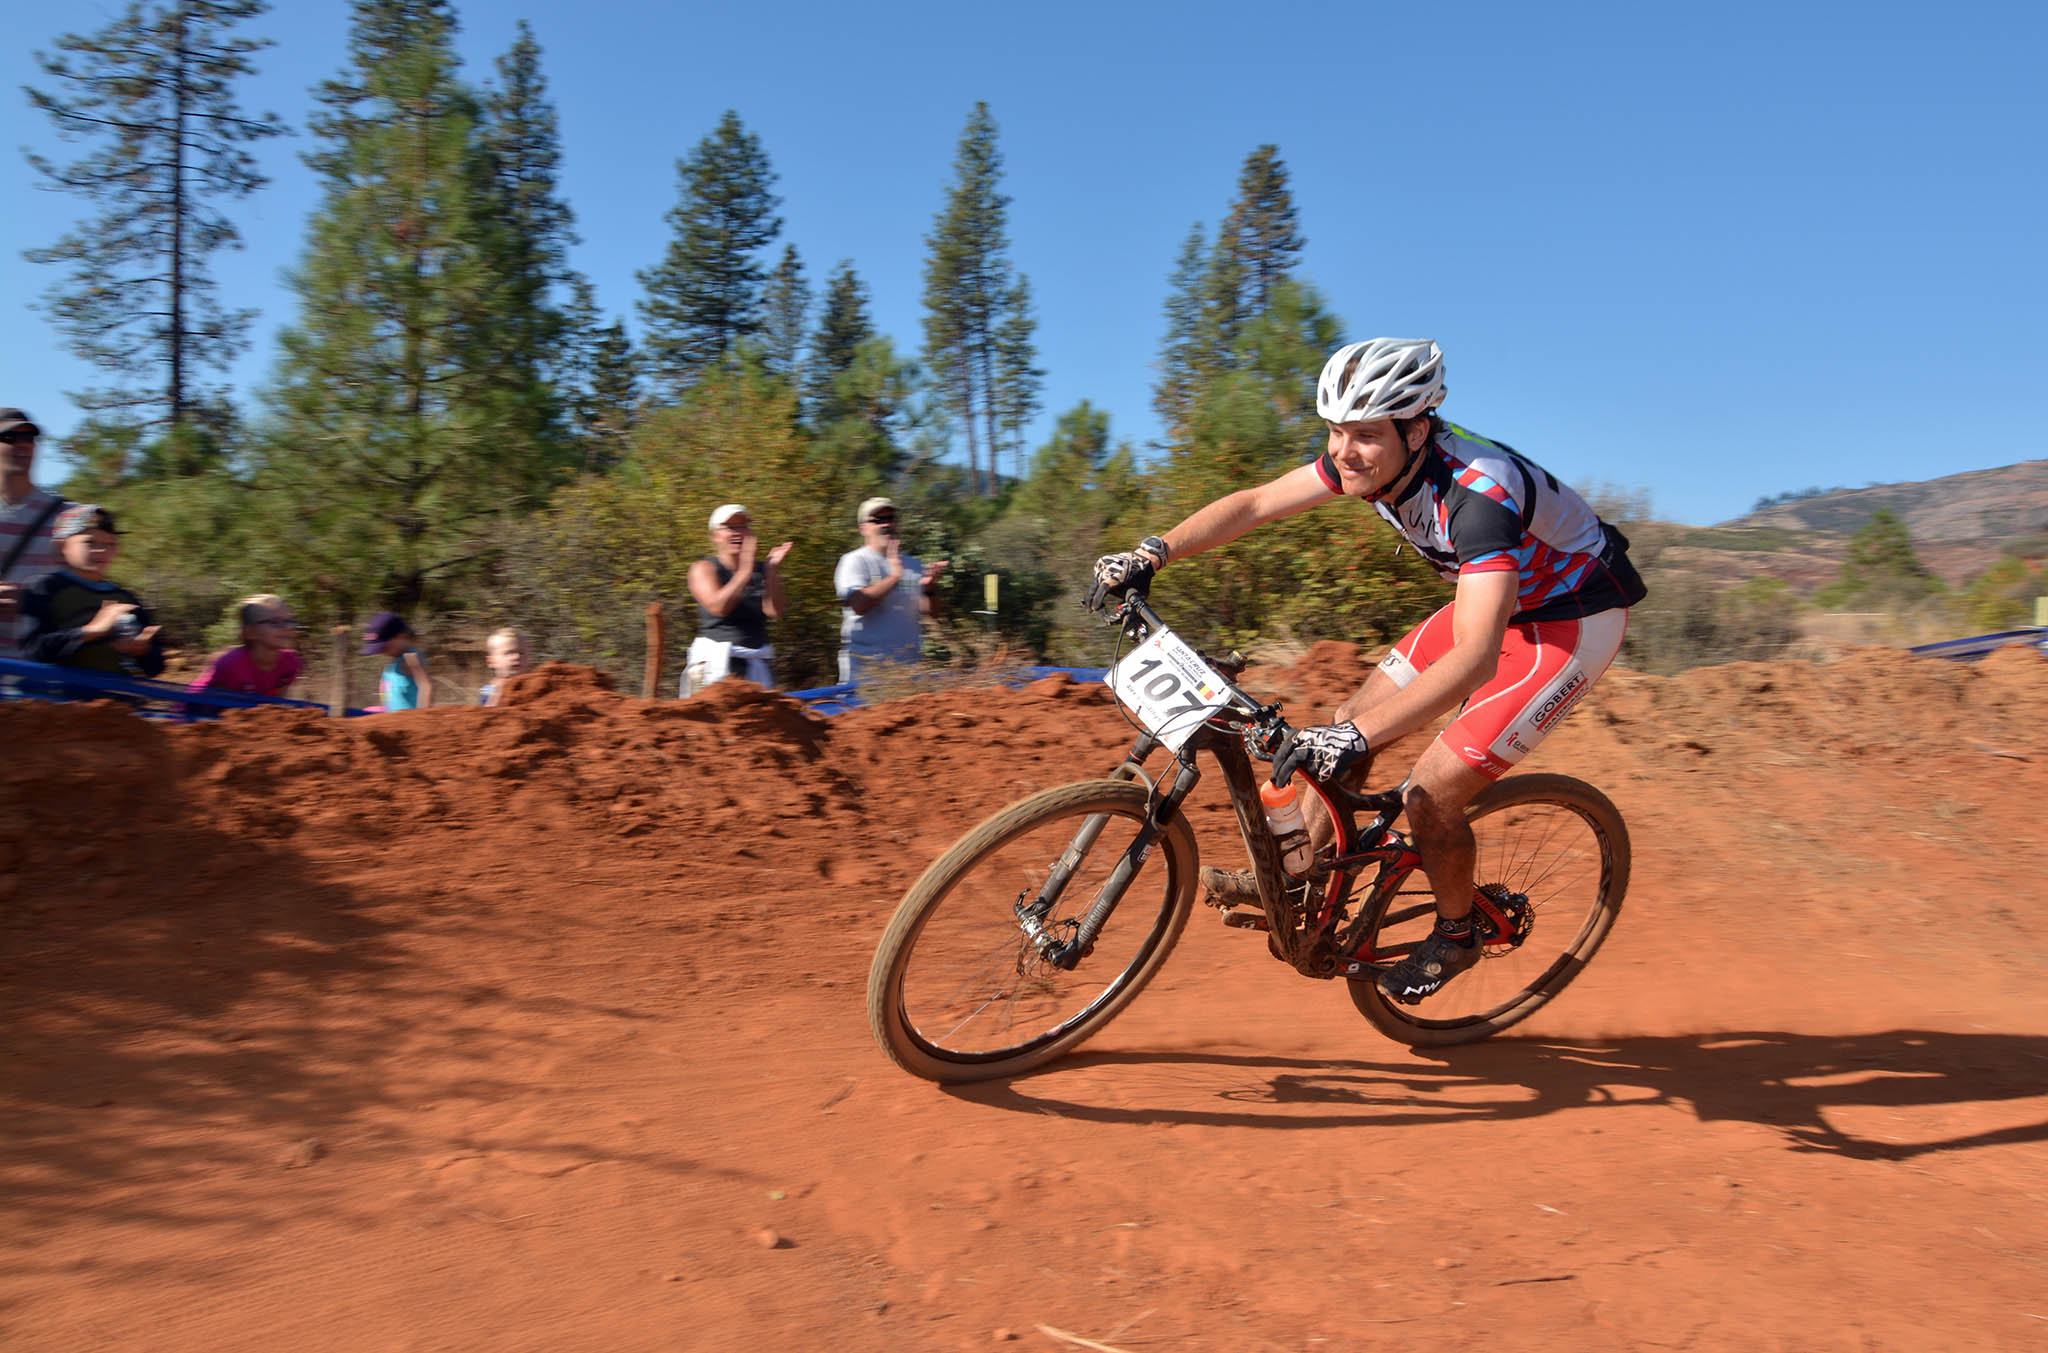 Wembo_24H_Worlds_Solo_Alexis_Matthys